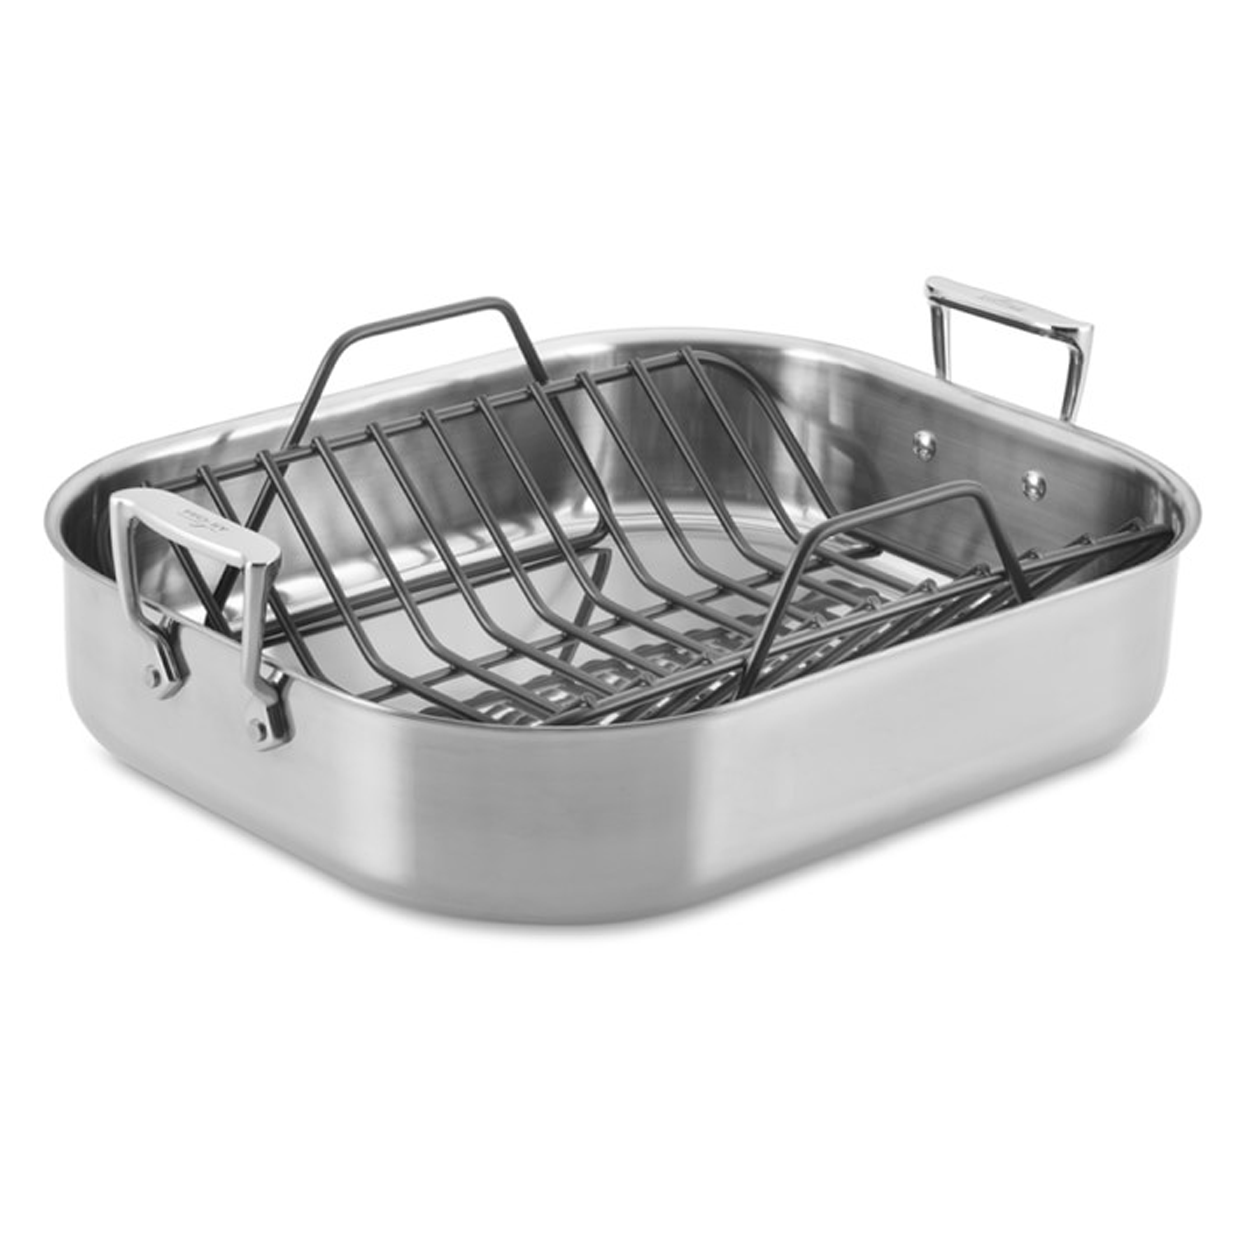 All-Clad Stainless-Steel Roasting Pan with Rack